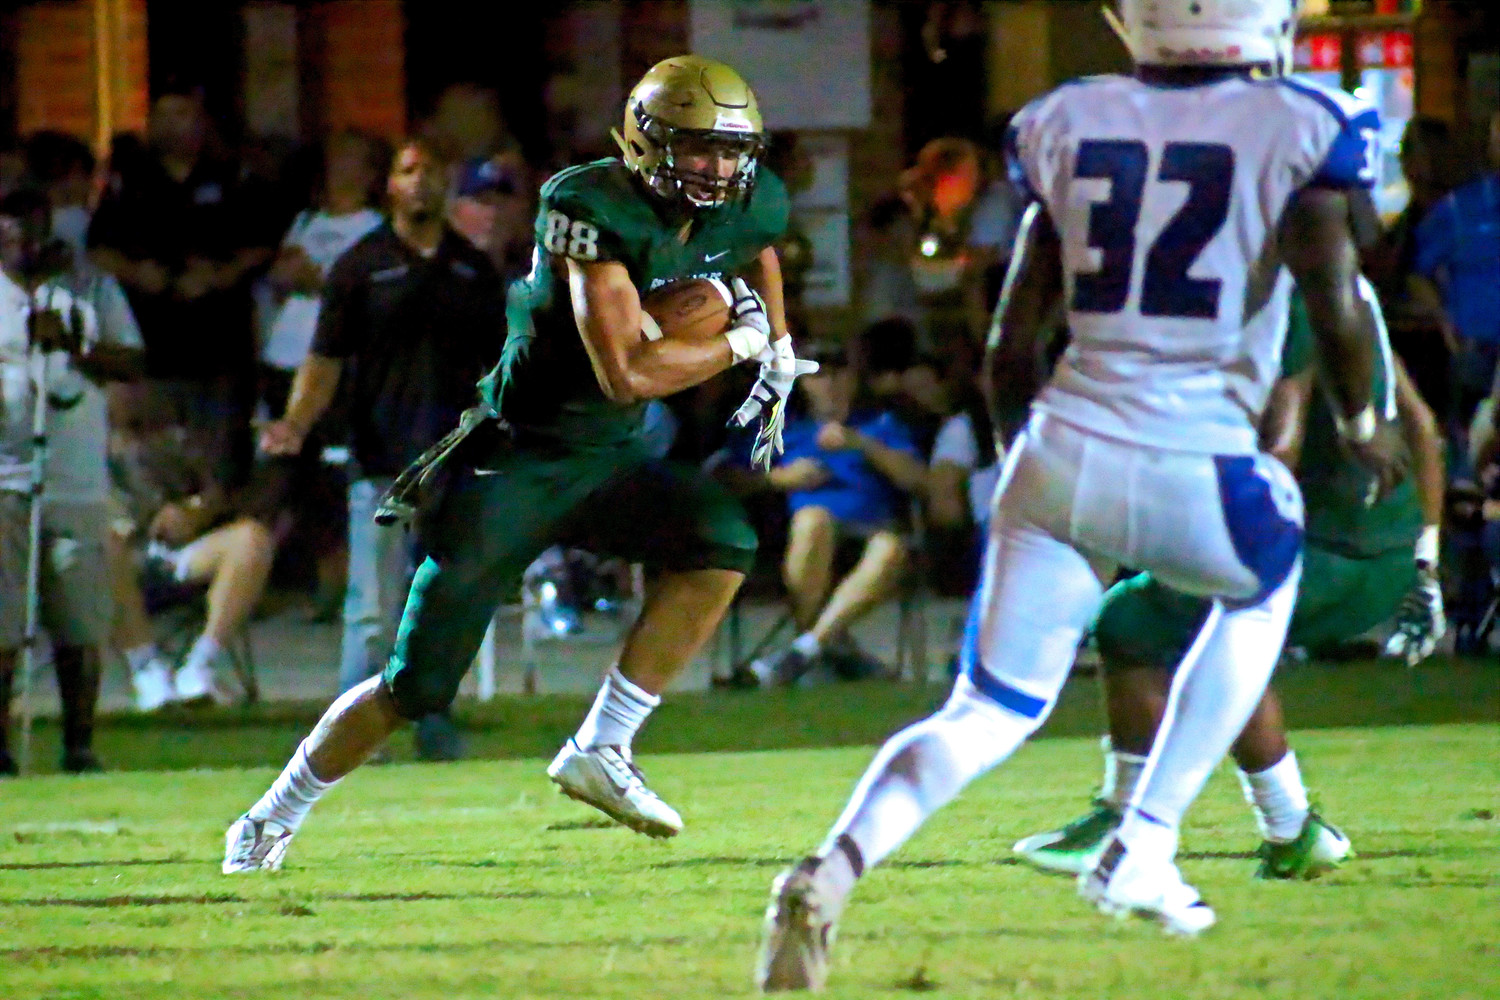 One key figure in the 2017 version will be returning tight end Nick Ferendo, who has become a reliable, over -the-middle pass catcher for either of two Fleming Island quarterbacks.